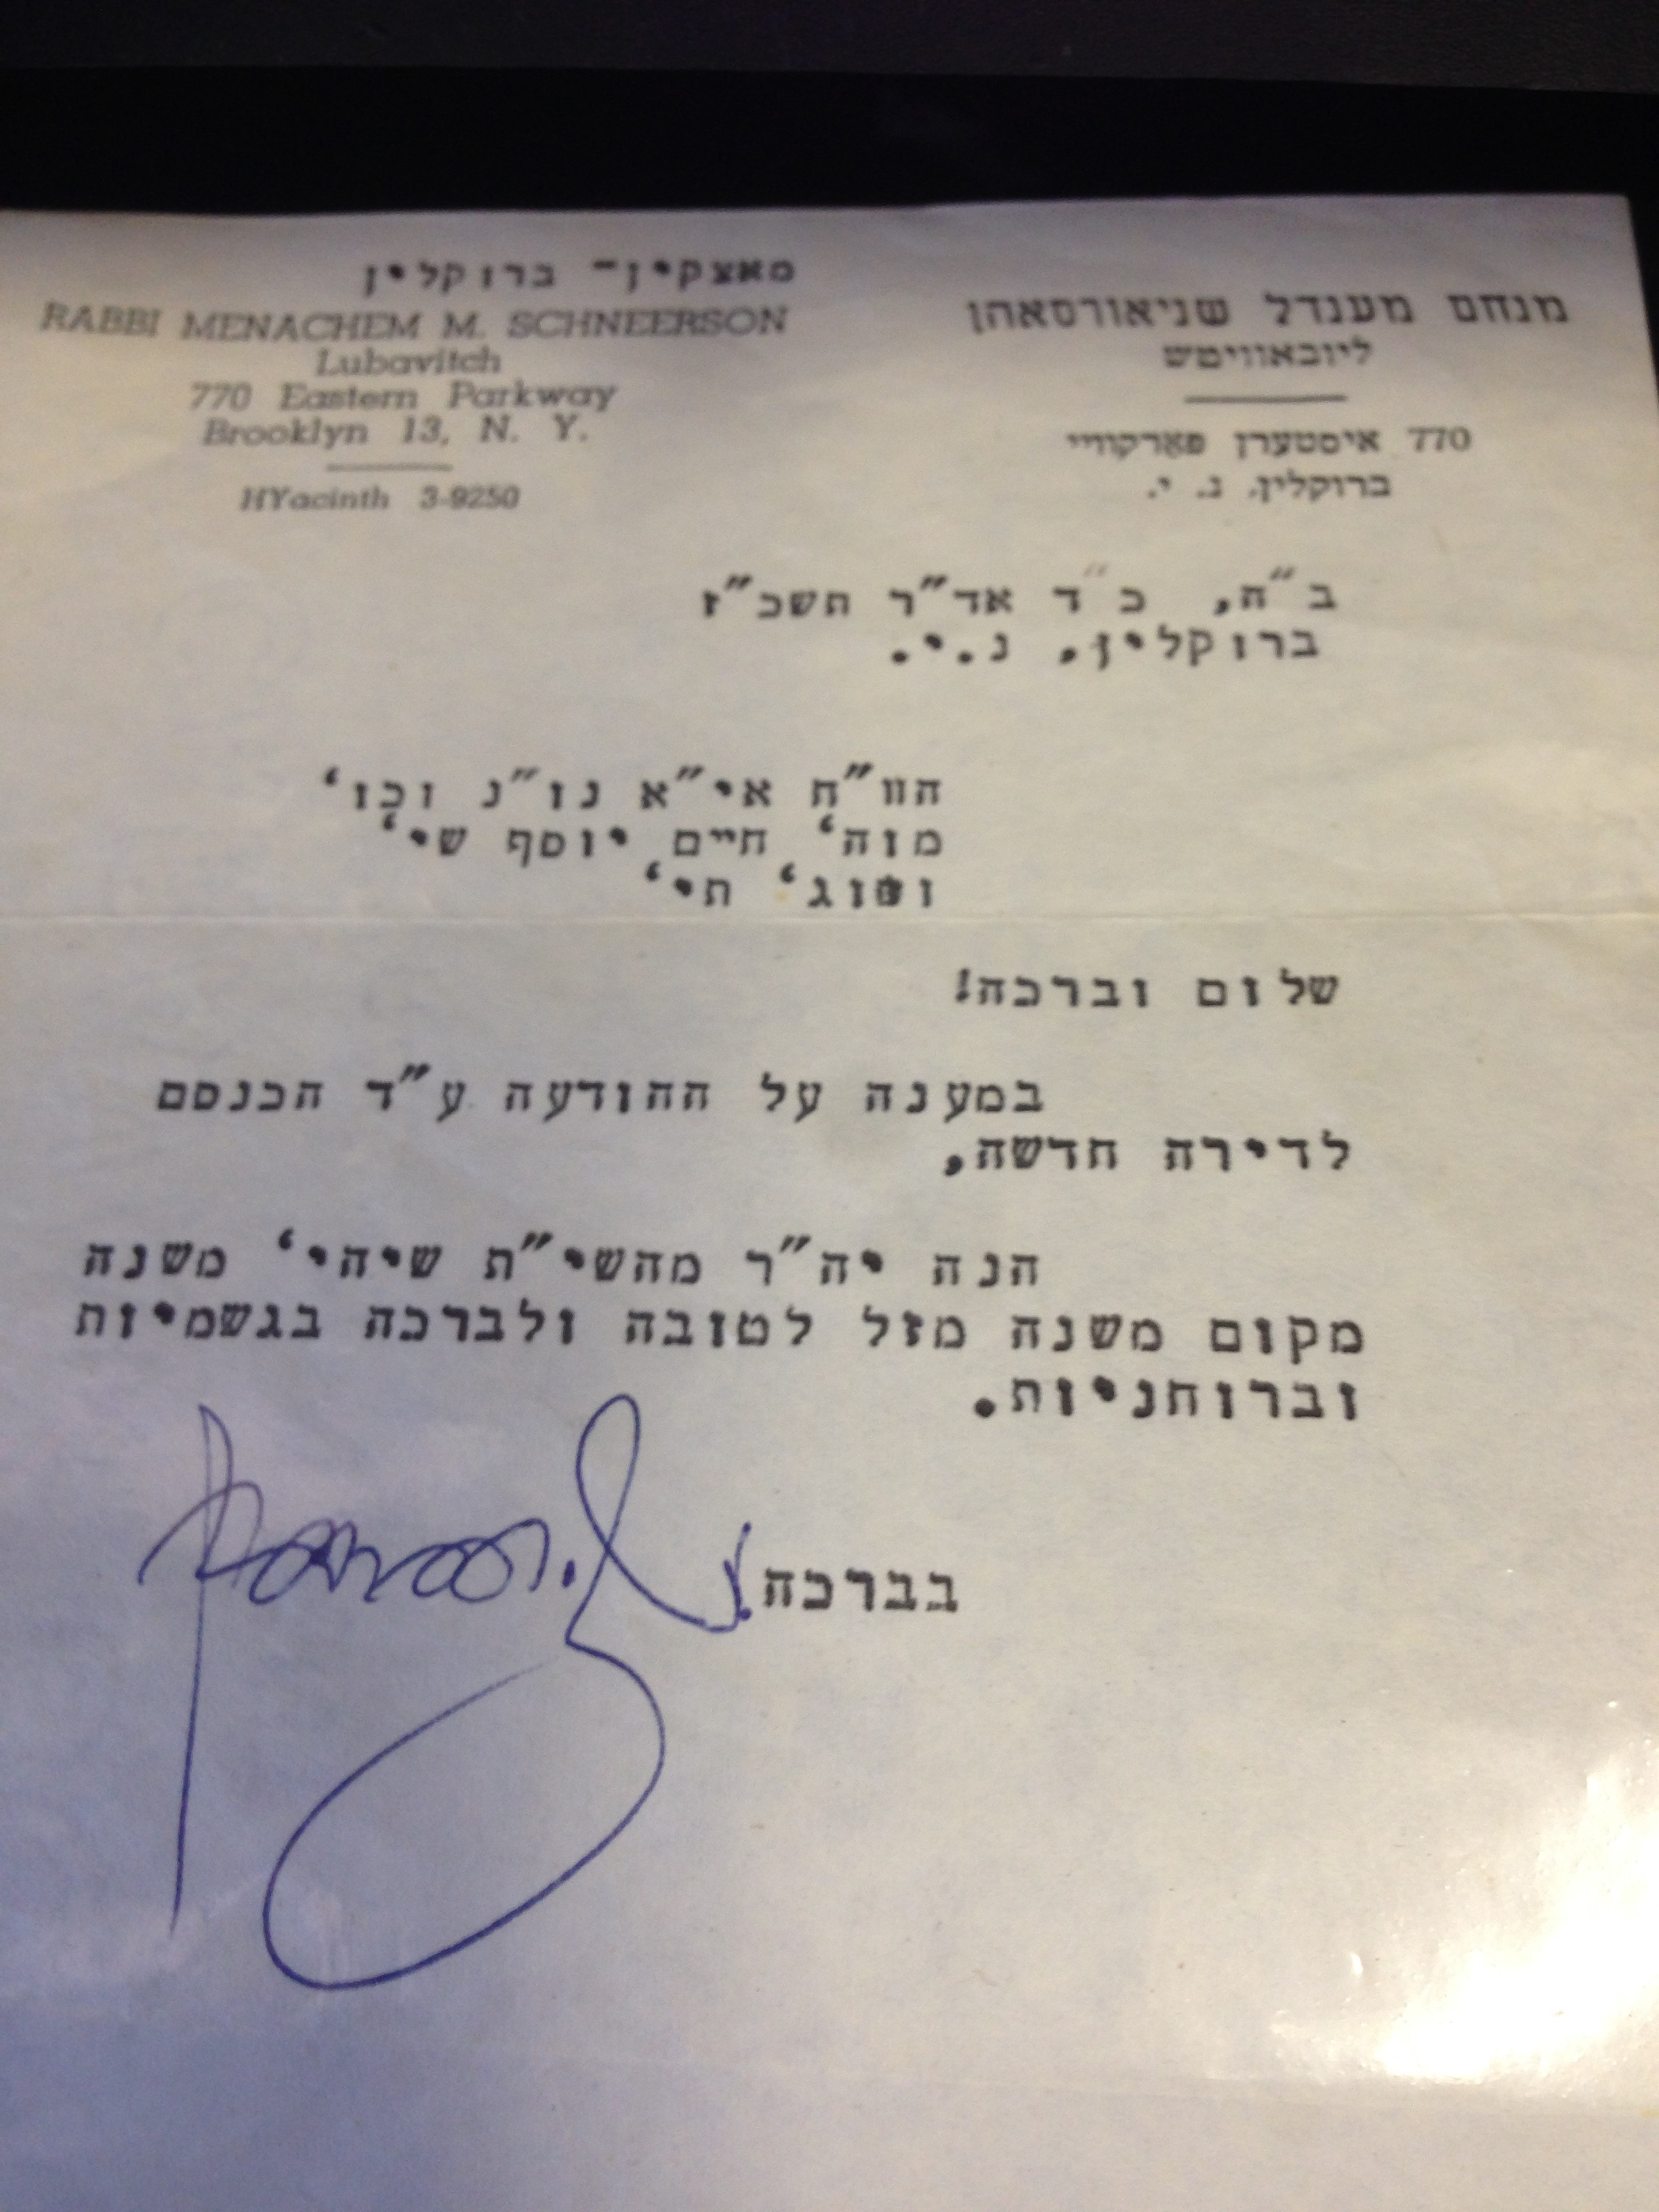 Letter of the Lubavitch Rabbi